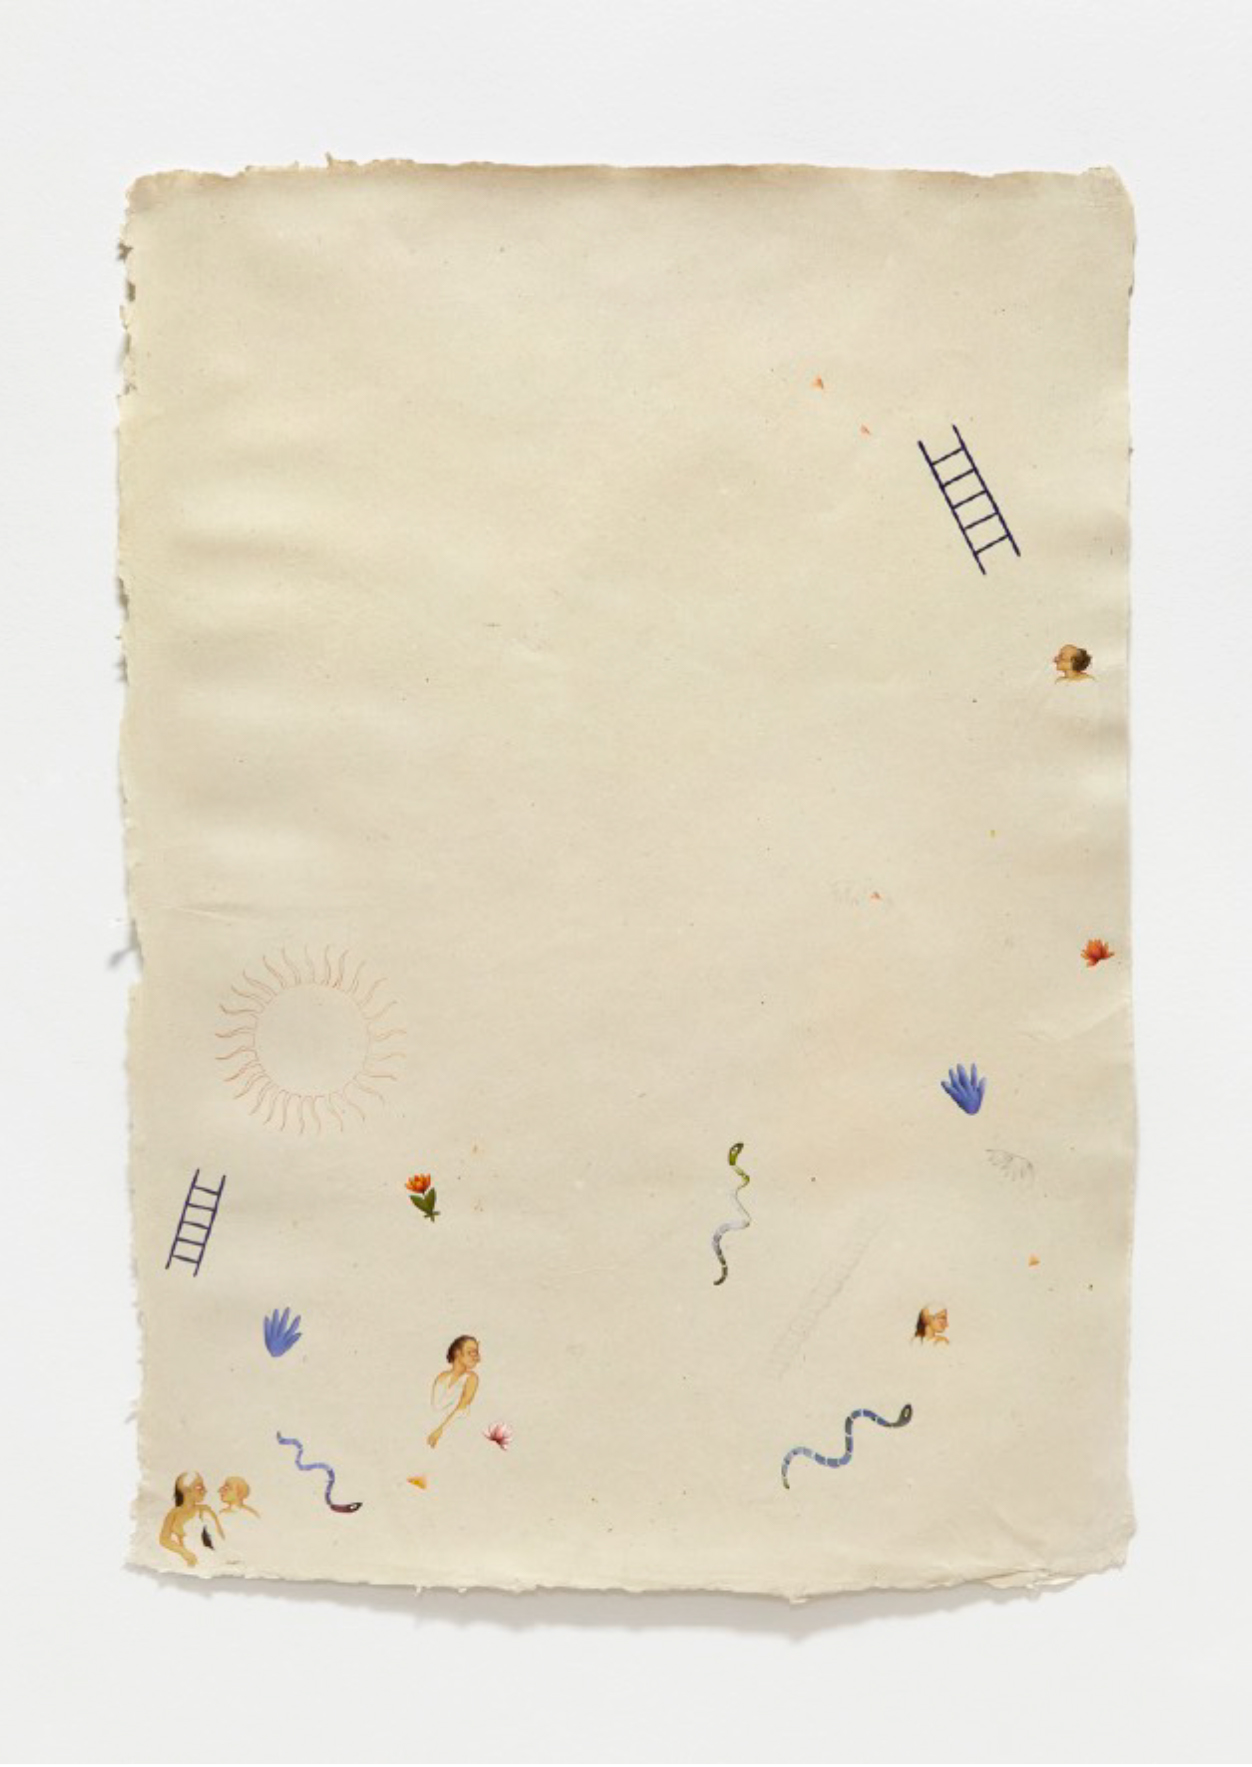 Snakes+Ladders, 2020, Natural pigment, pencil, natural hand-dyed paper, watercolour, pencil on handmade Indian hemp paper, 55 x 80 cm